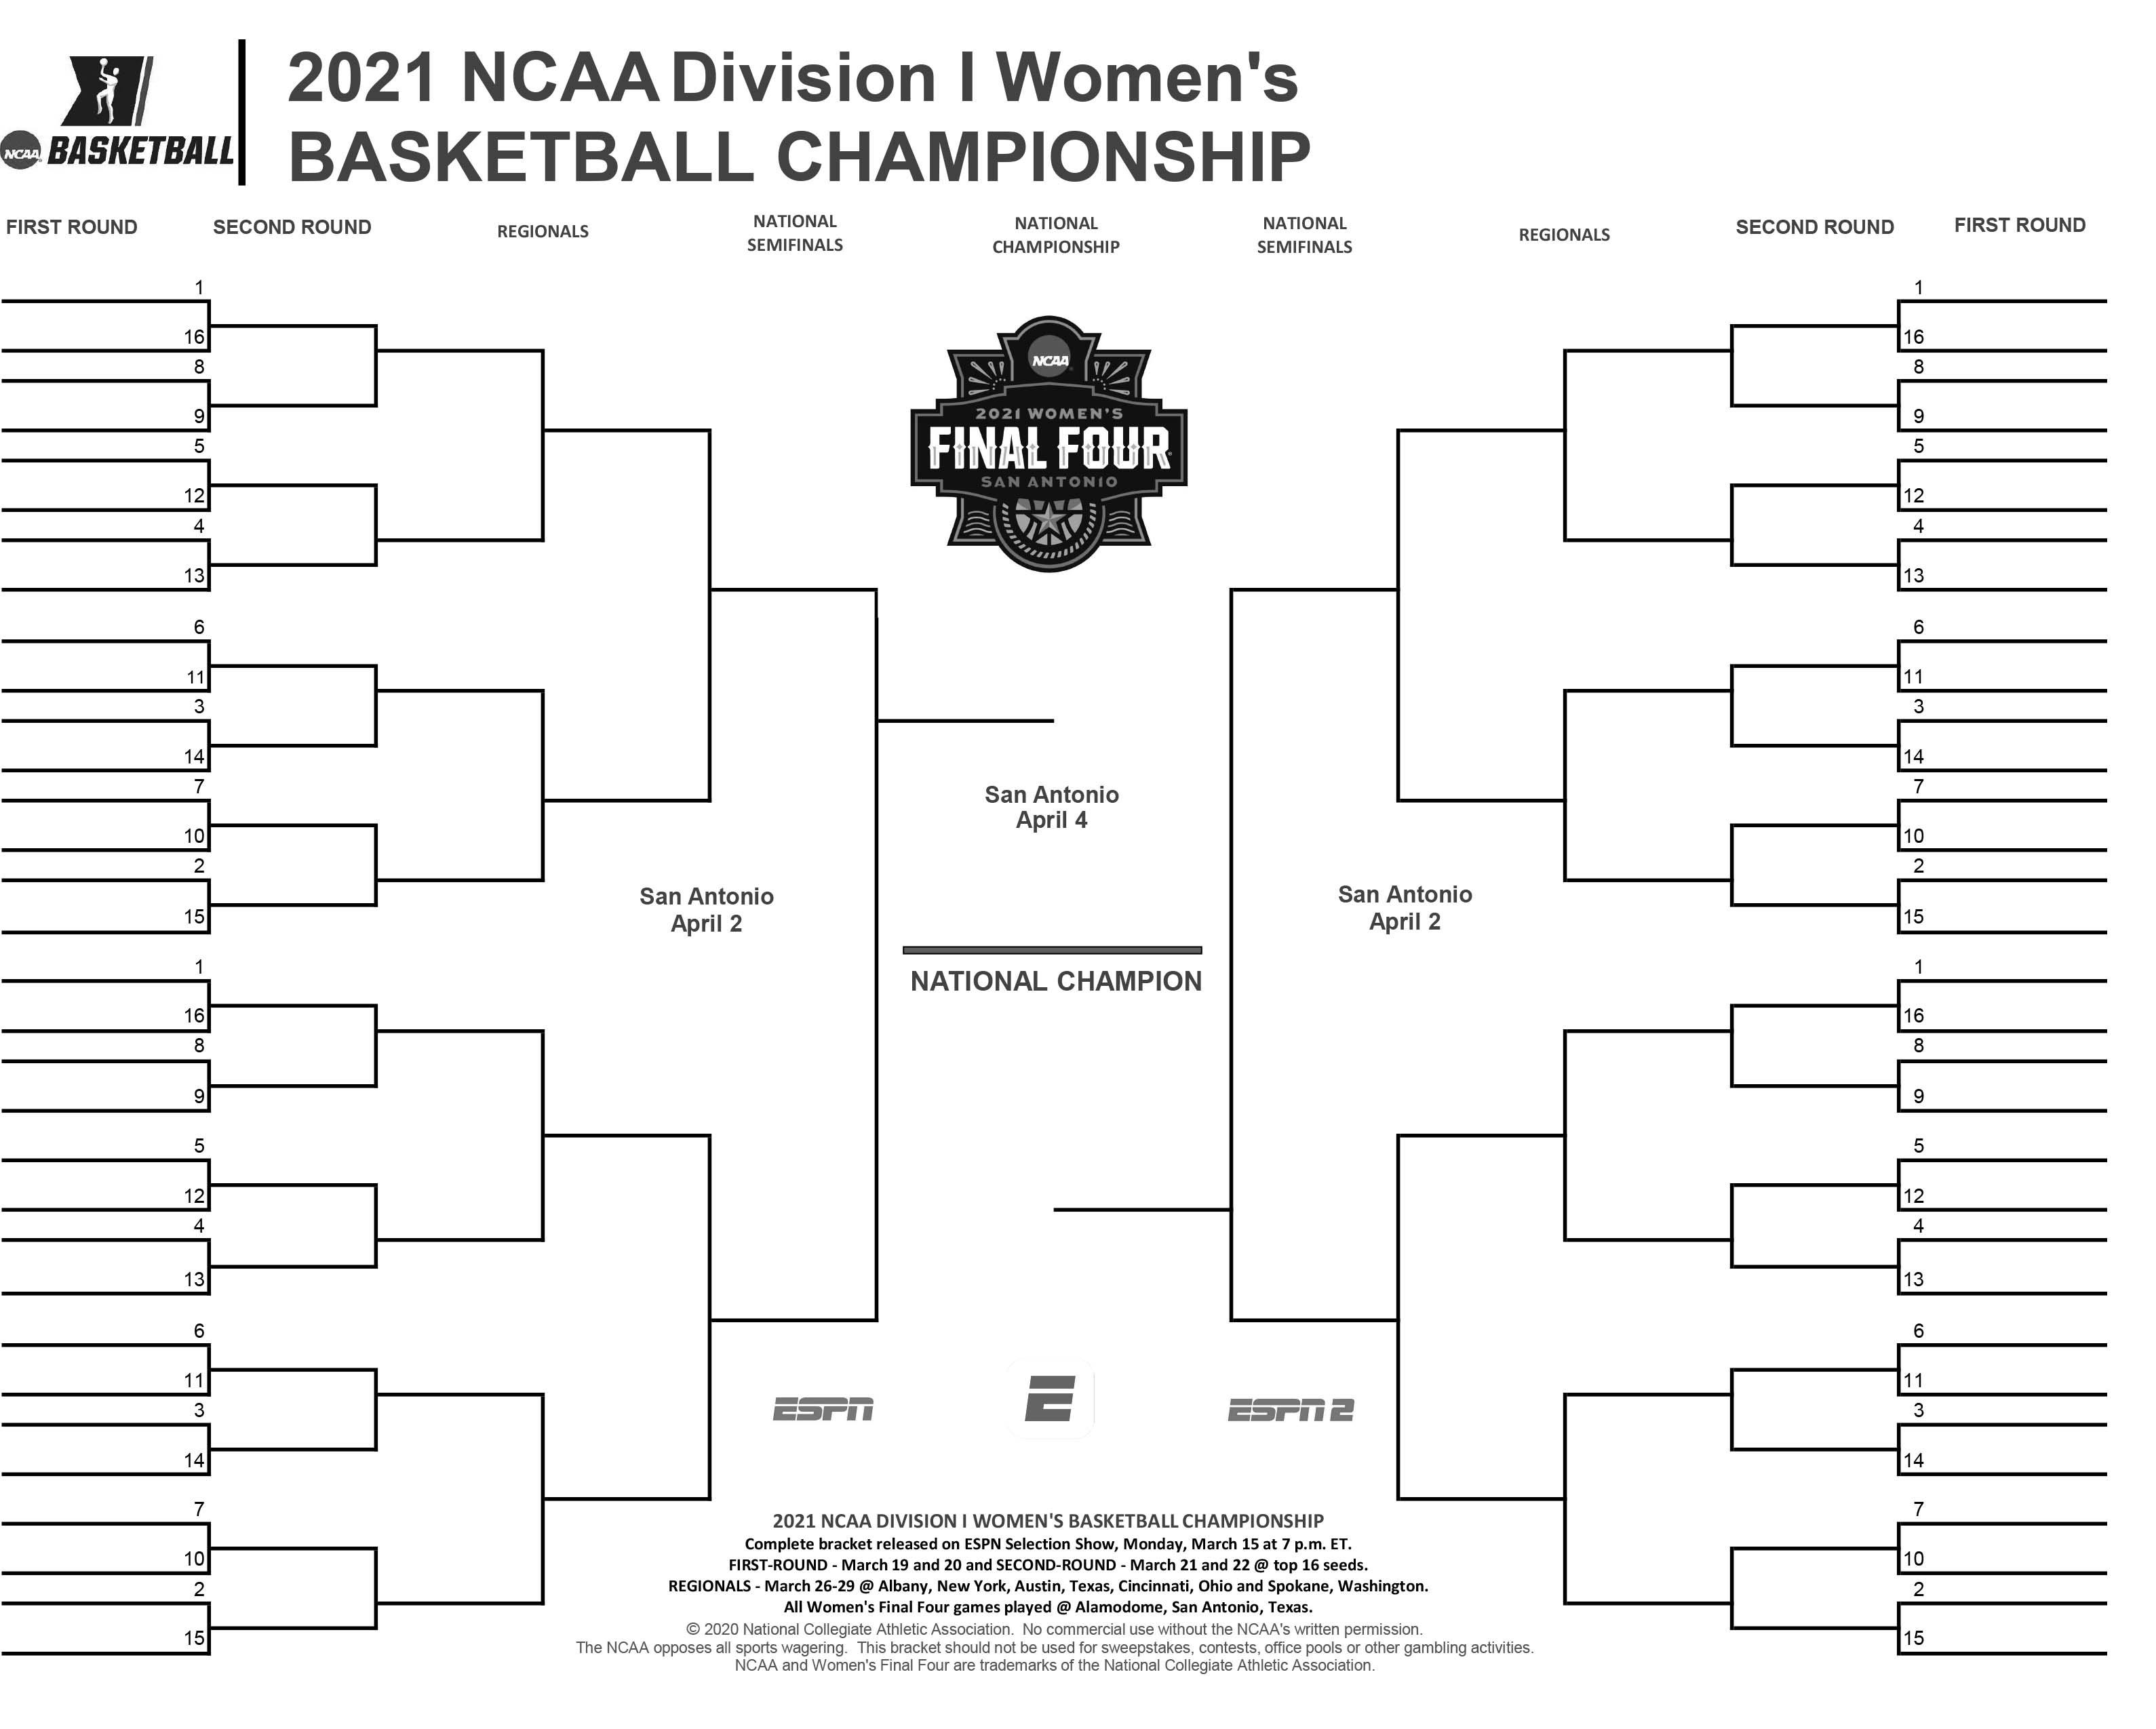 Best March Madness Bracket 2021 2021 NCAA women's basketball bracket: Printable tournament .PDF